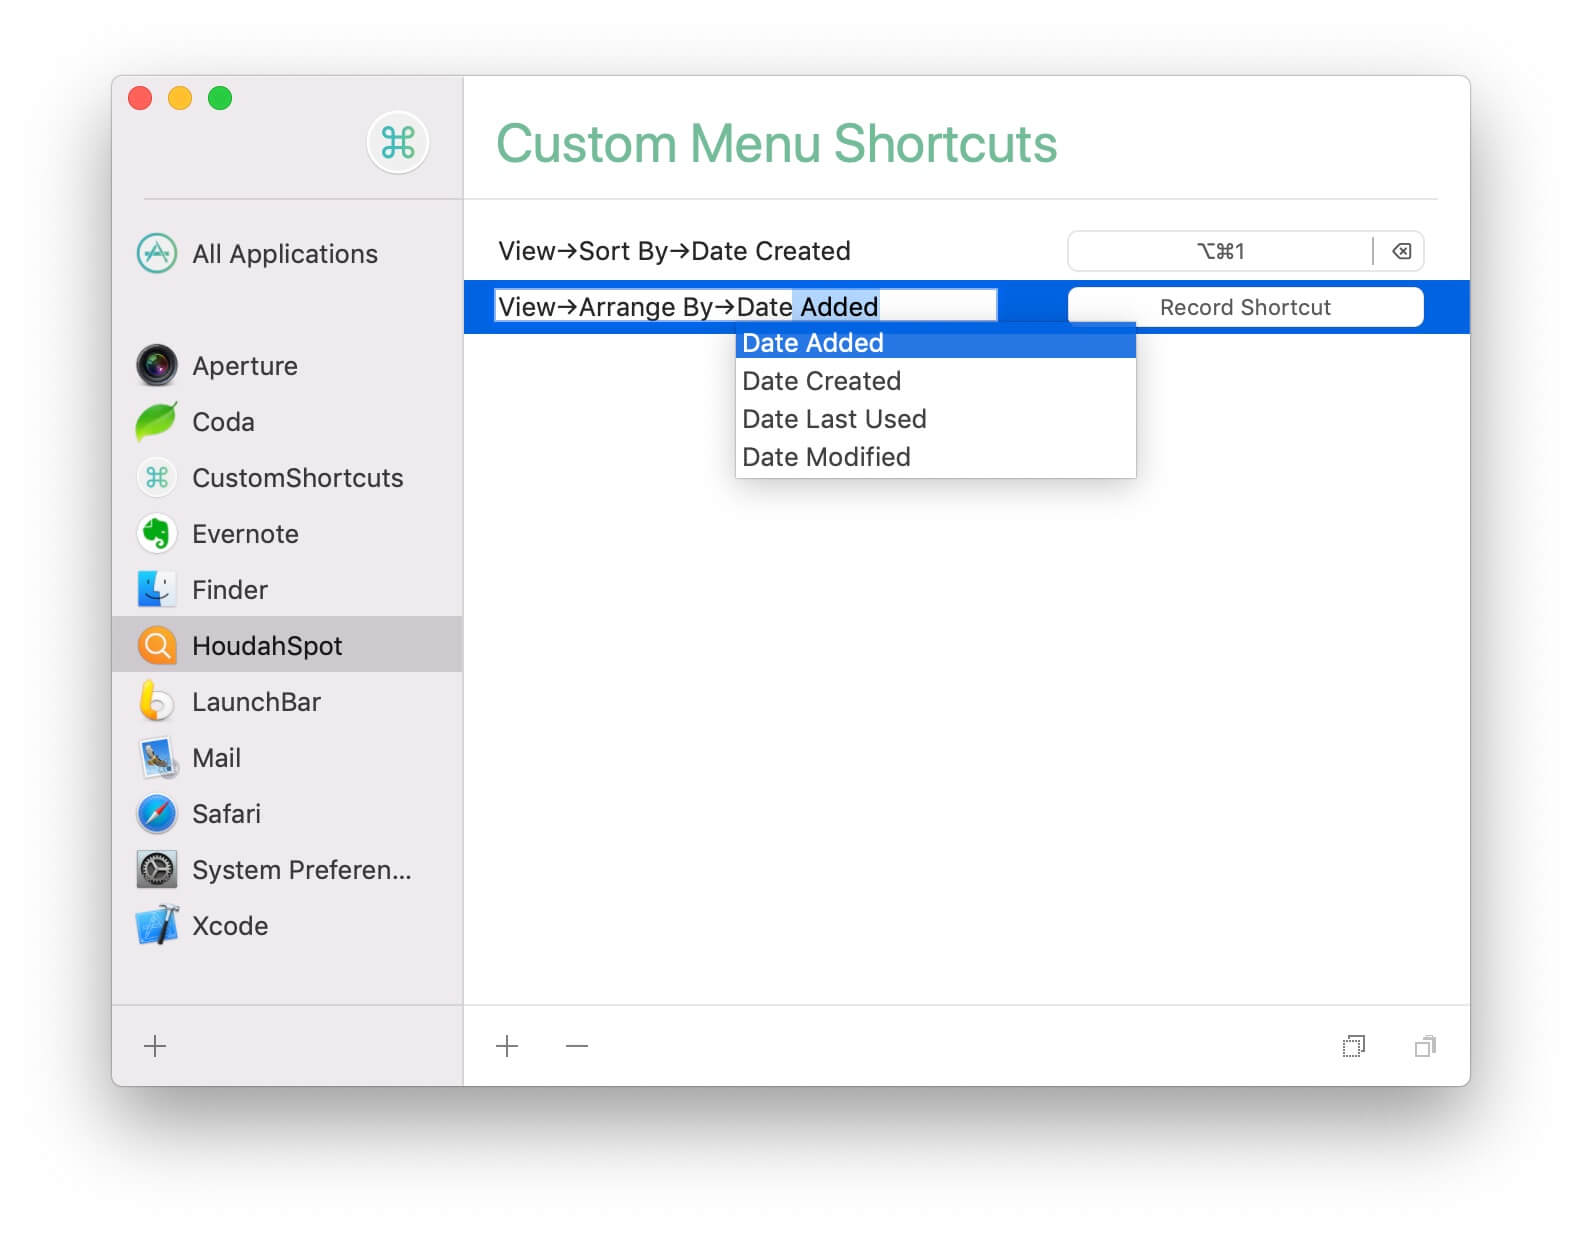 CustomShortcuts